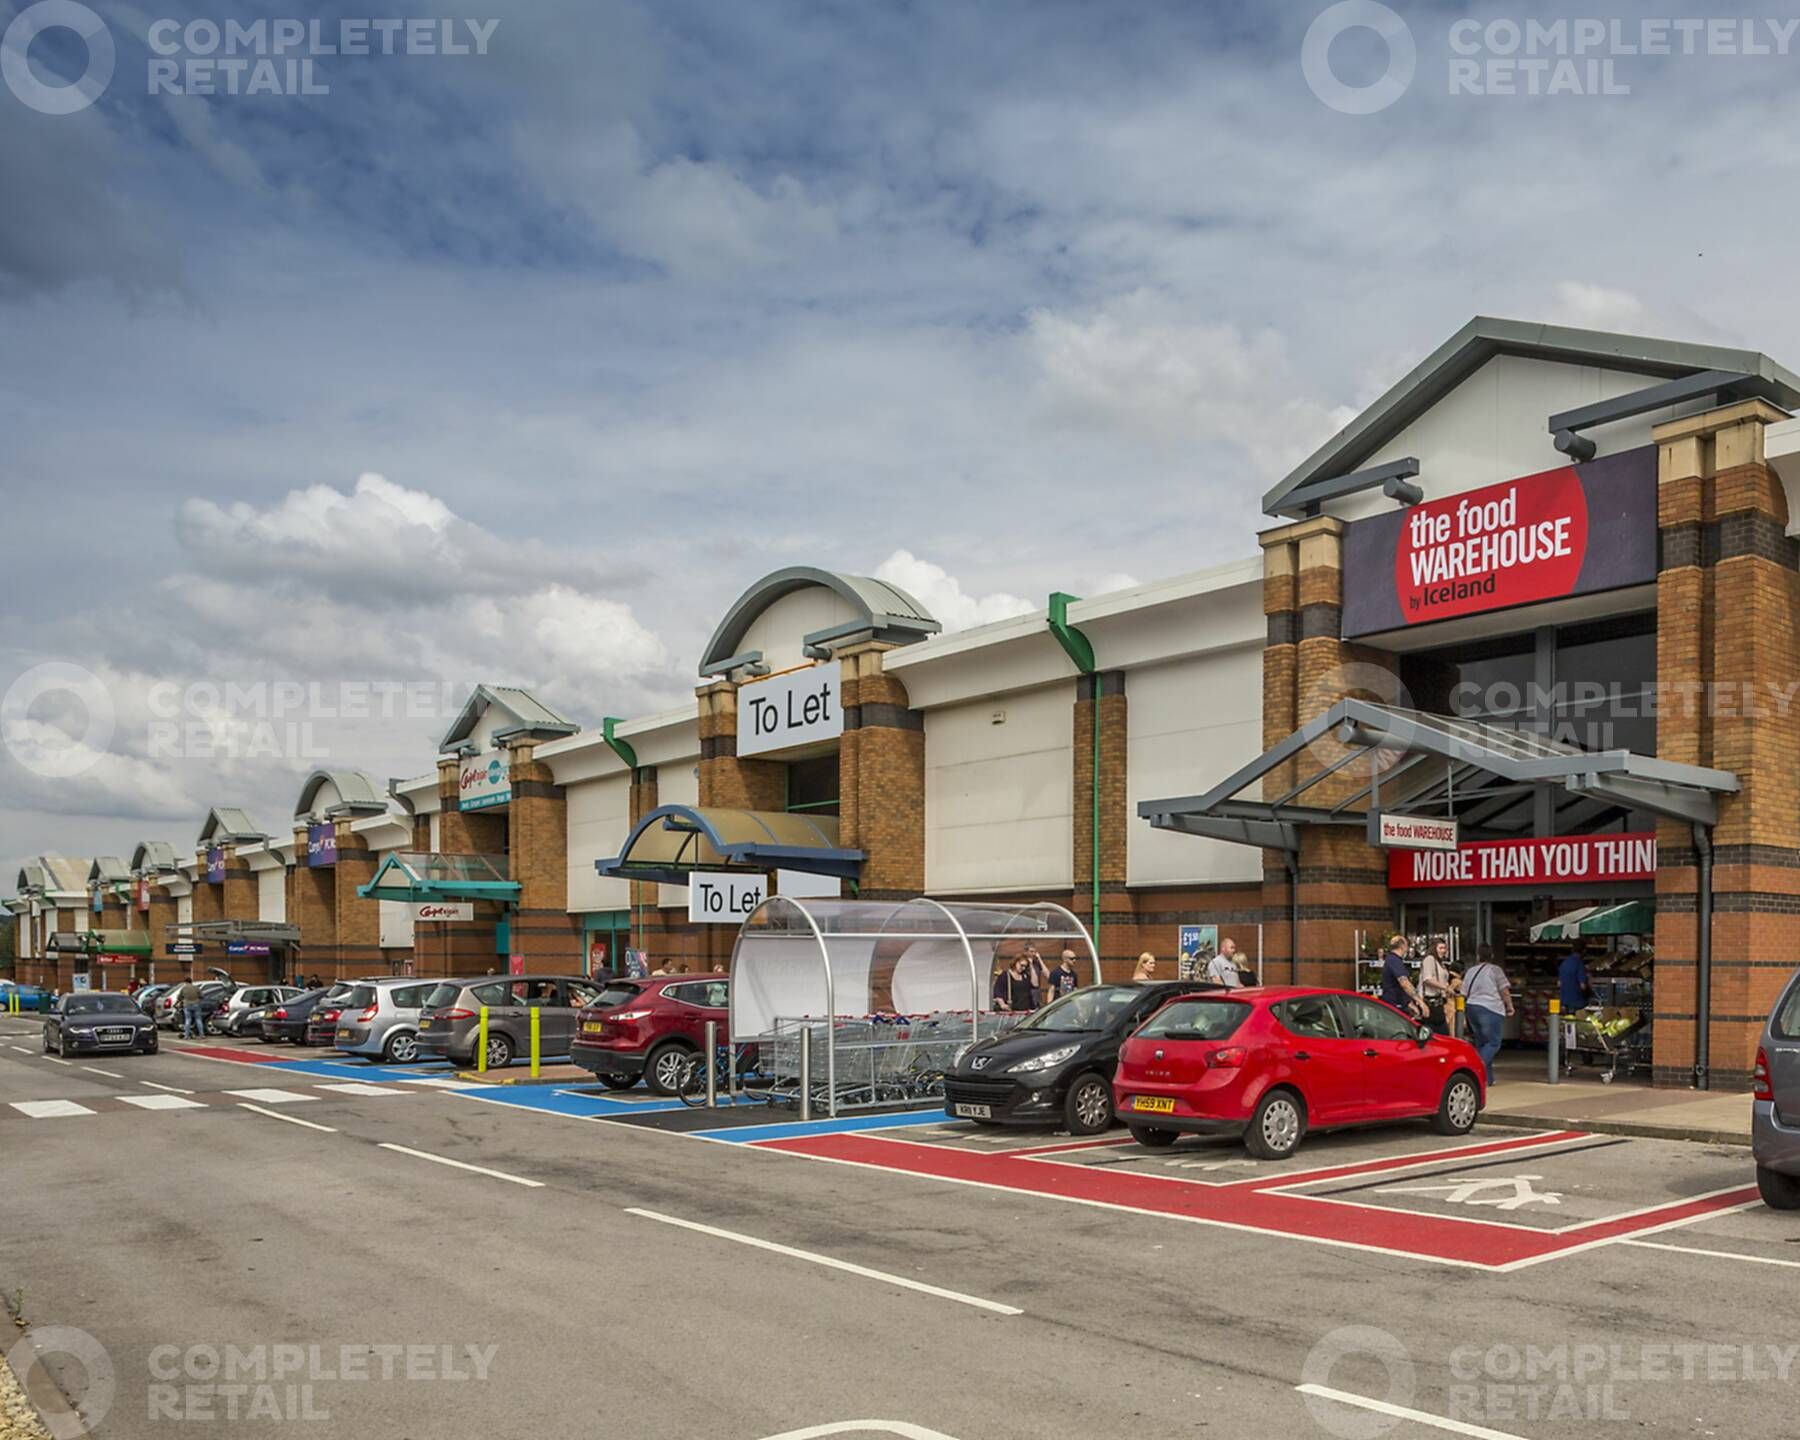 Meadowhall Retail Park Sheffield Completely Retail